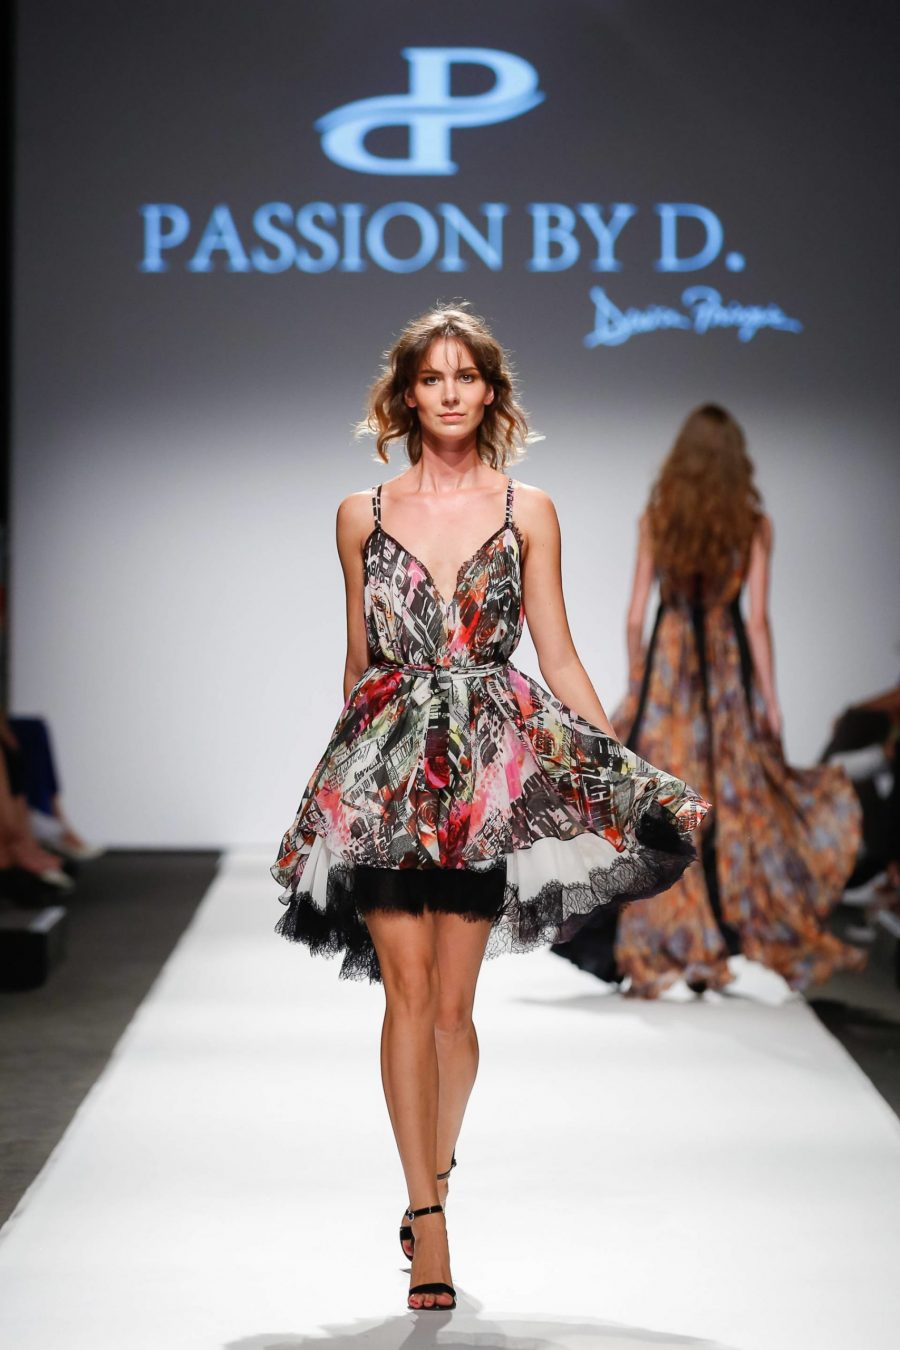 dress Fashion Show Vienna Fashion week 2019 - Passion by D